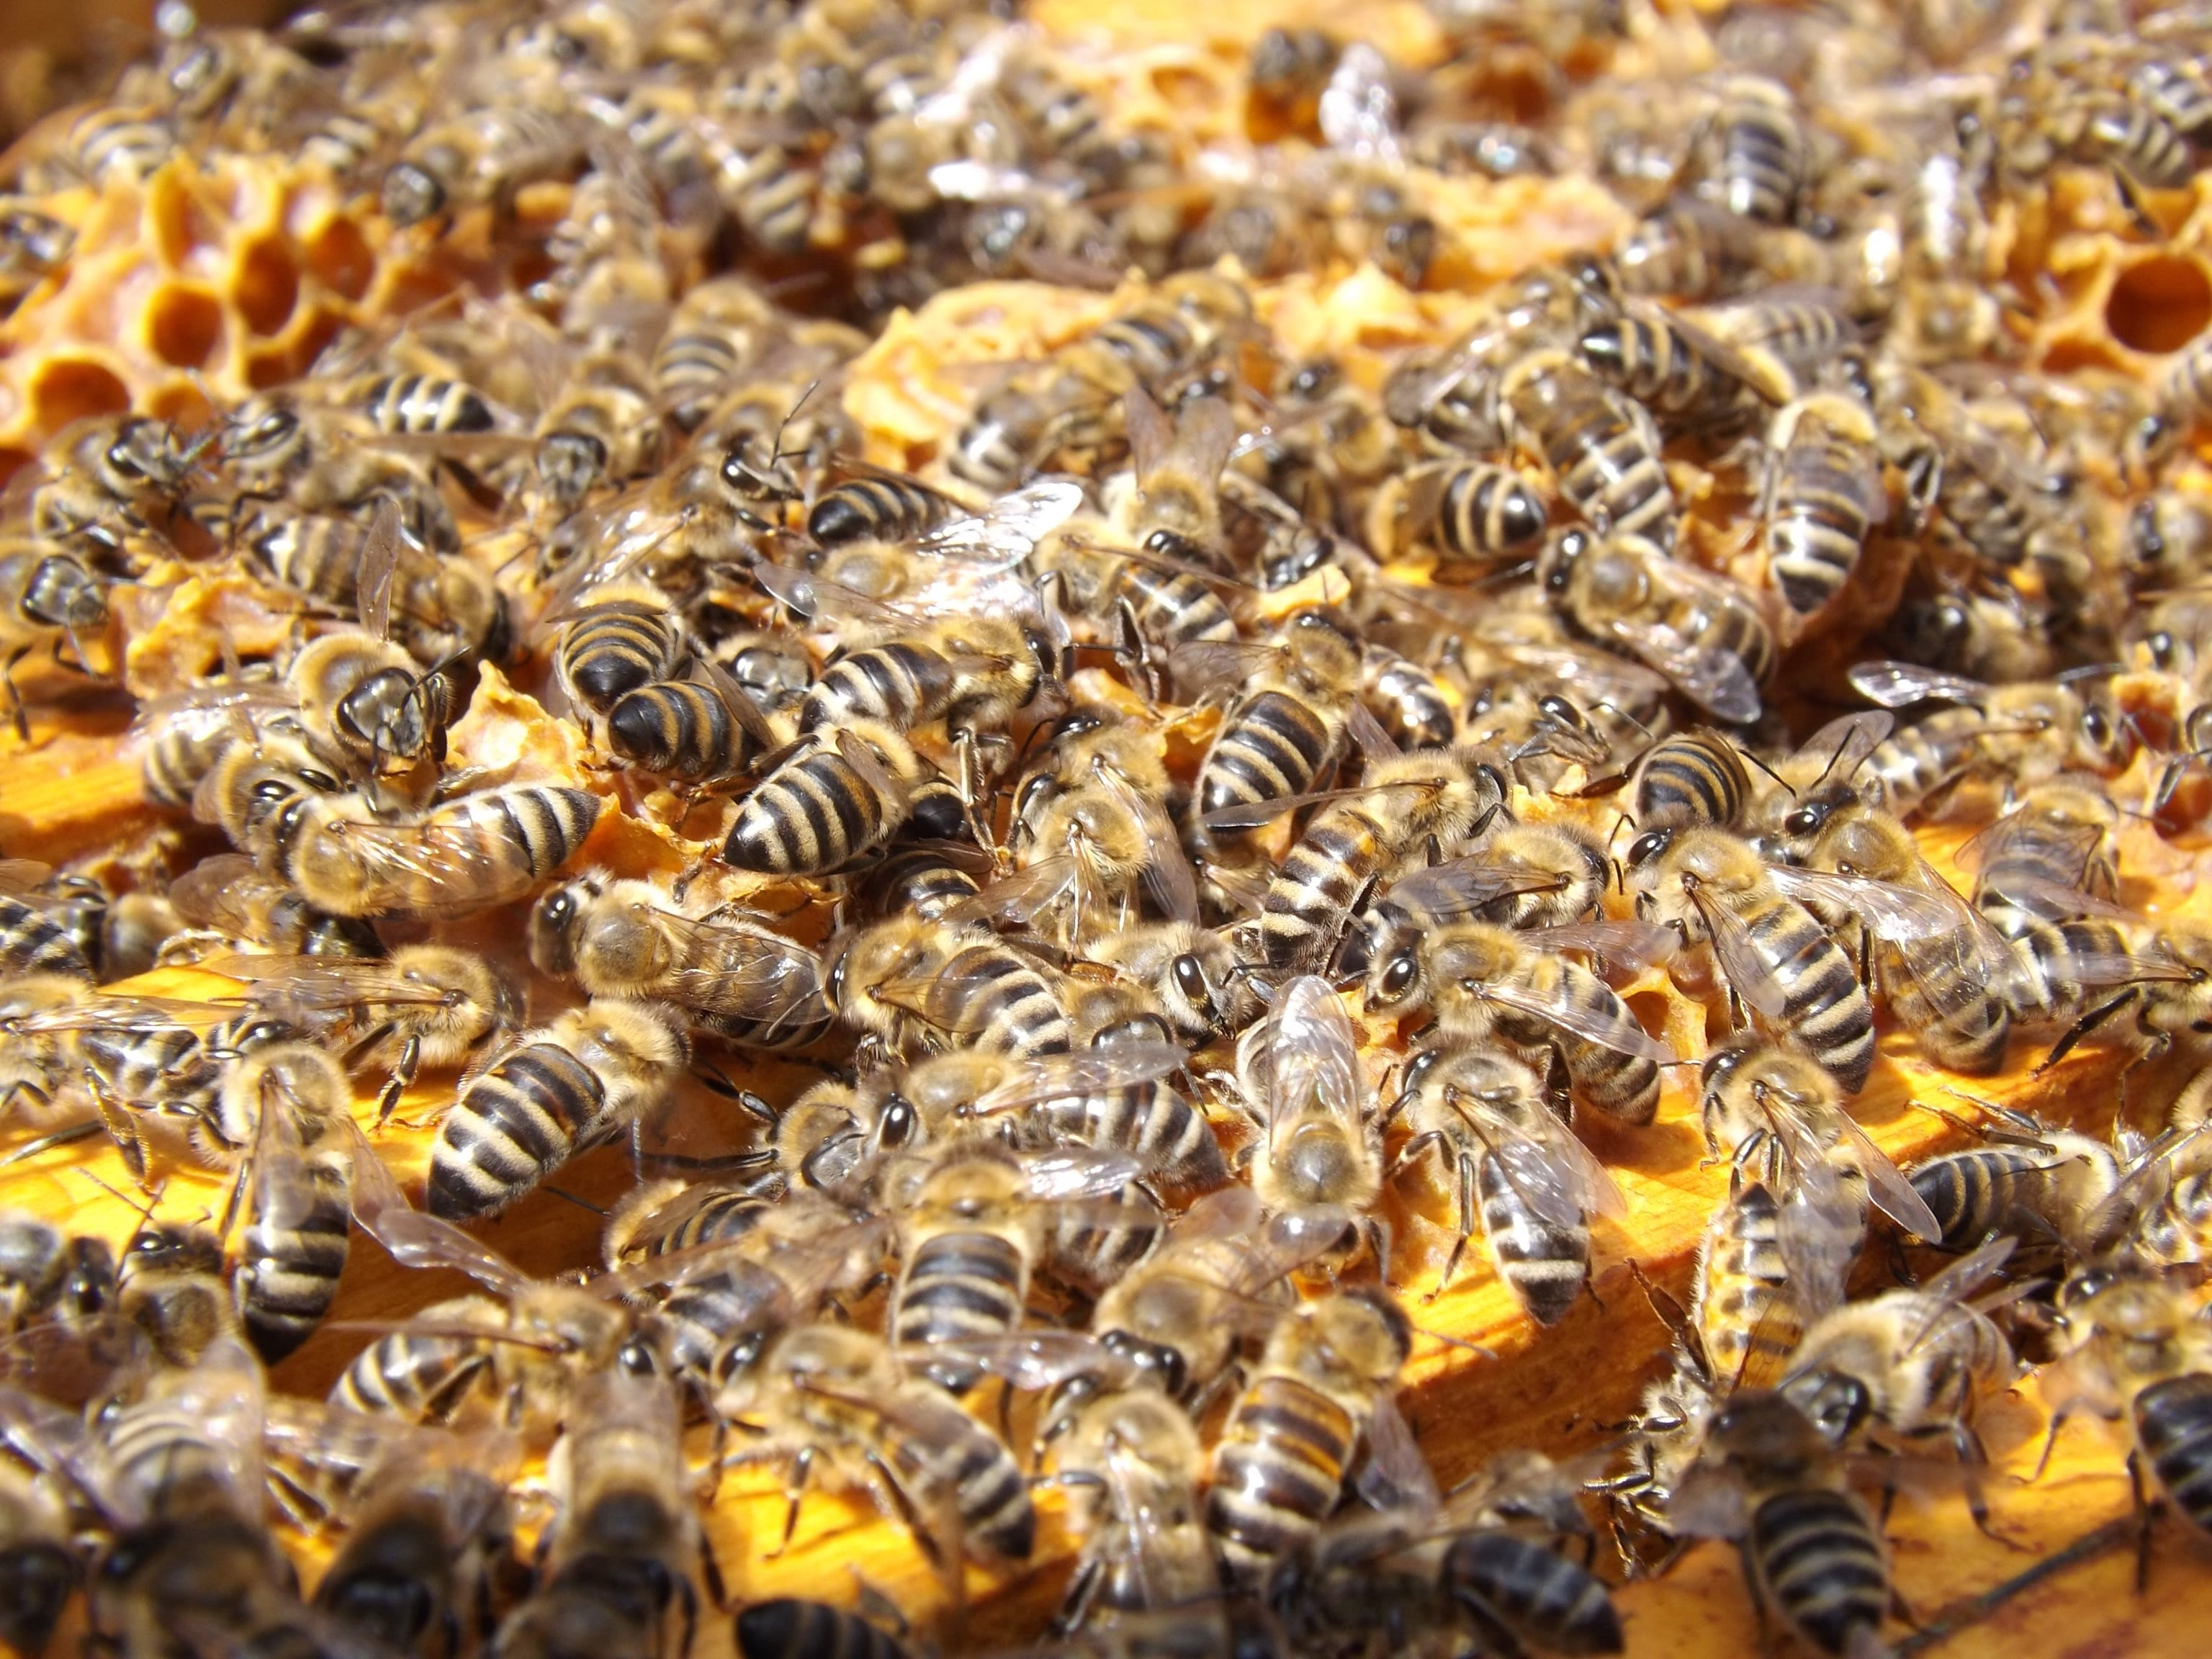 Swarm of Honey Bee